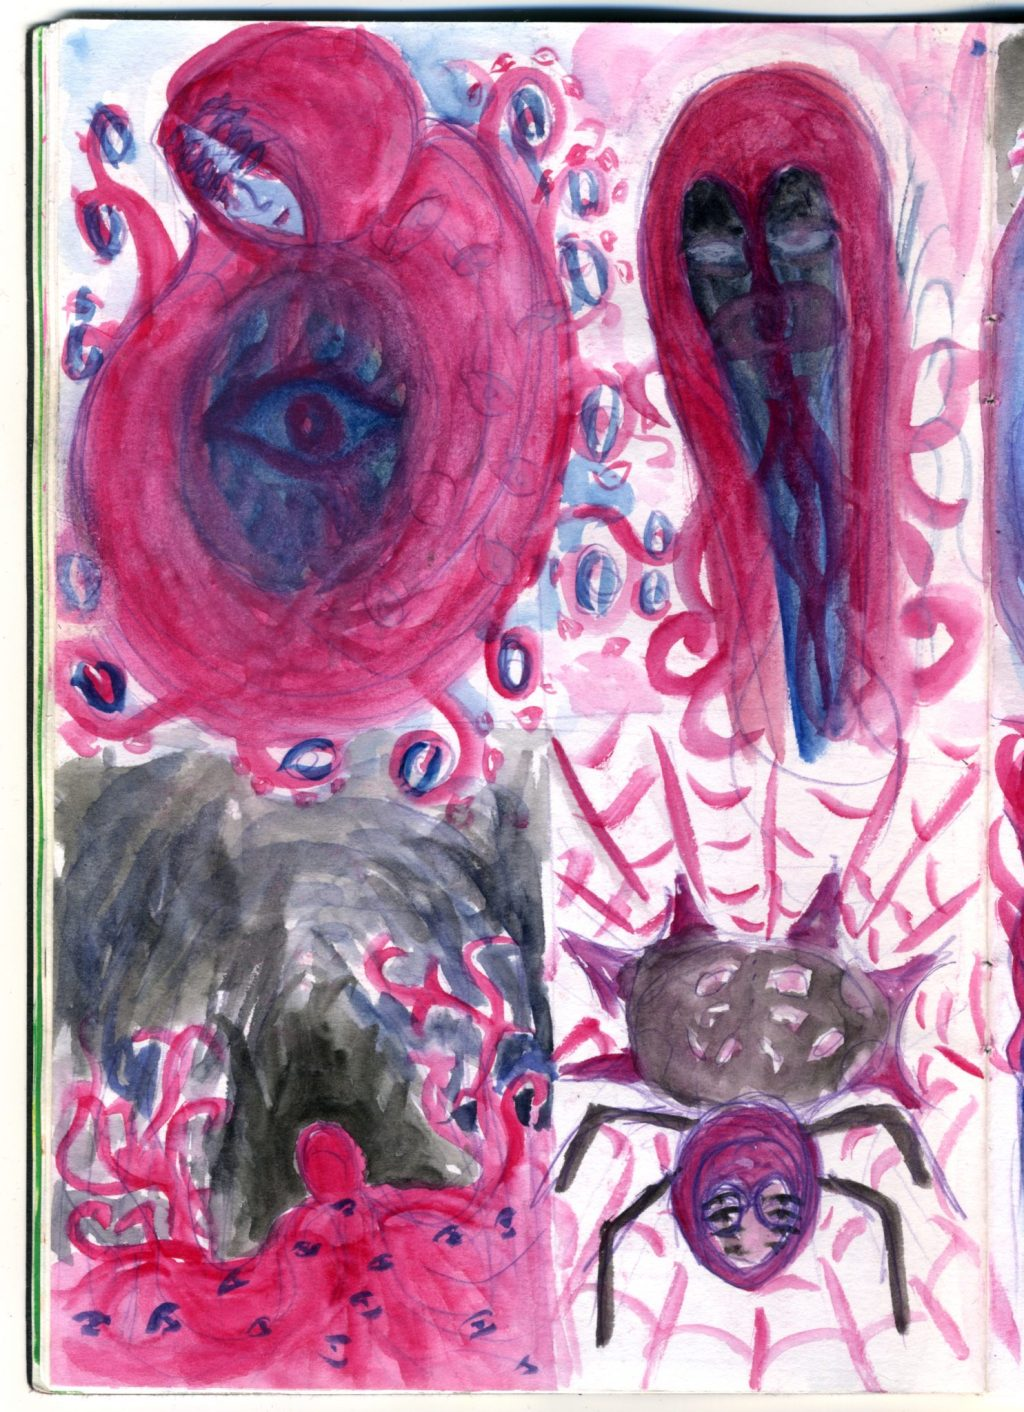 A watercolour sketch of creatures based on the Little Red Riding Hood fairytale.